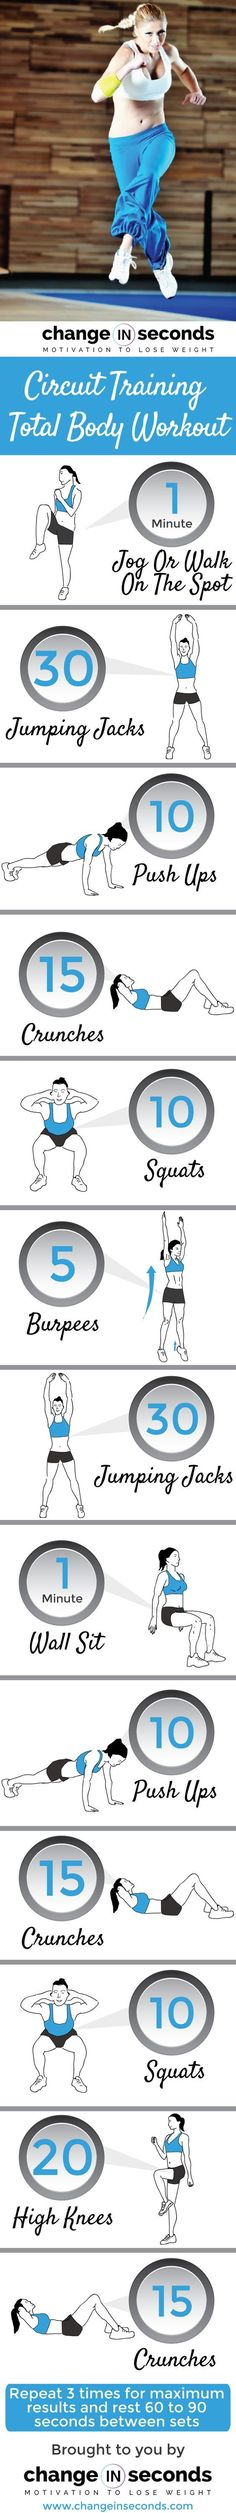 List of exercises & instructions for circuit training total body workout: 1 Minute Jog Or Walk On The Spot 30 Jumping Jacks 10 Push Ups 15 Crunches 10 Squats 5 Burpees 30 Jumping Jacks 1 Minute Wall Sit 10 Push Ups 15 Crunches 10 Squats 20 High Knees 15 Circuit Training Workouts, Workout List, Lower Ab Workouts, Butt Workout, Easy Workouts, At Home Workouts, Burpees Workout, Workout Circuit, Squats